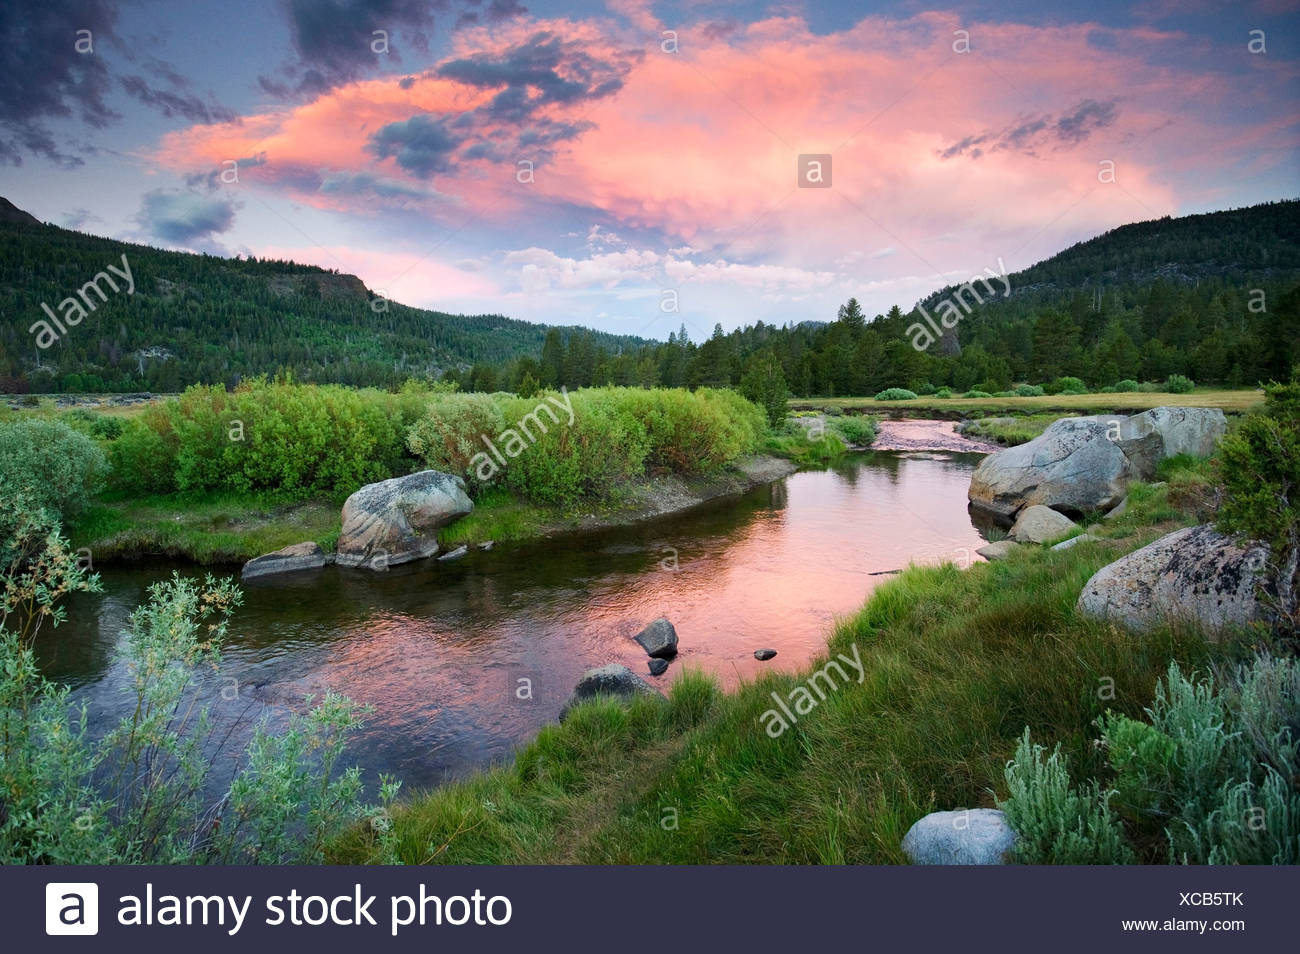 A beautiful sunset over the West Fork of the Carson River in Hope Valley near South Lake Tahoe, CA. - Stock Image